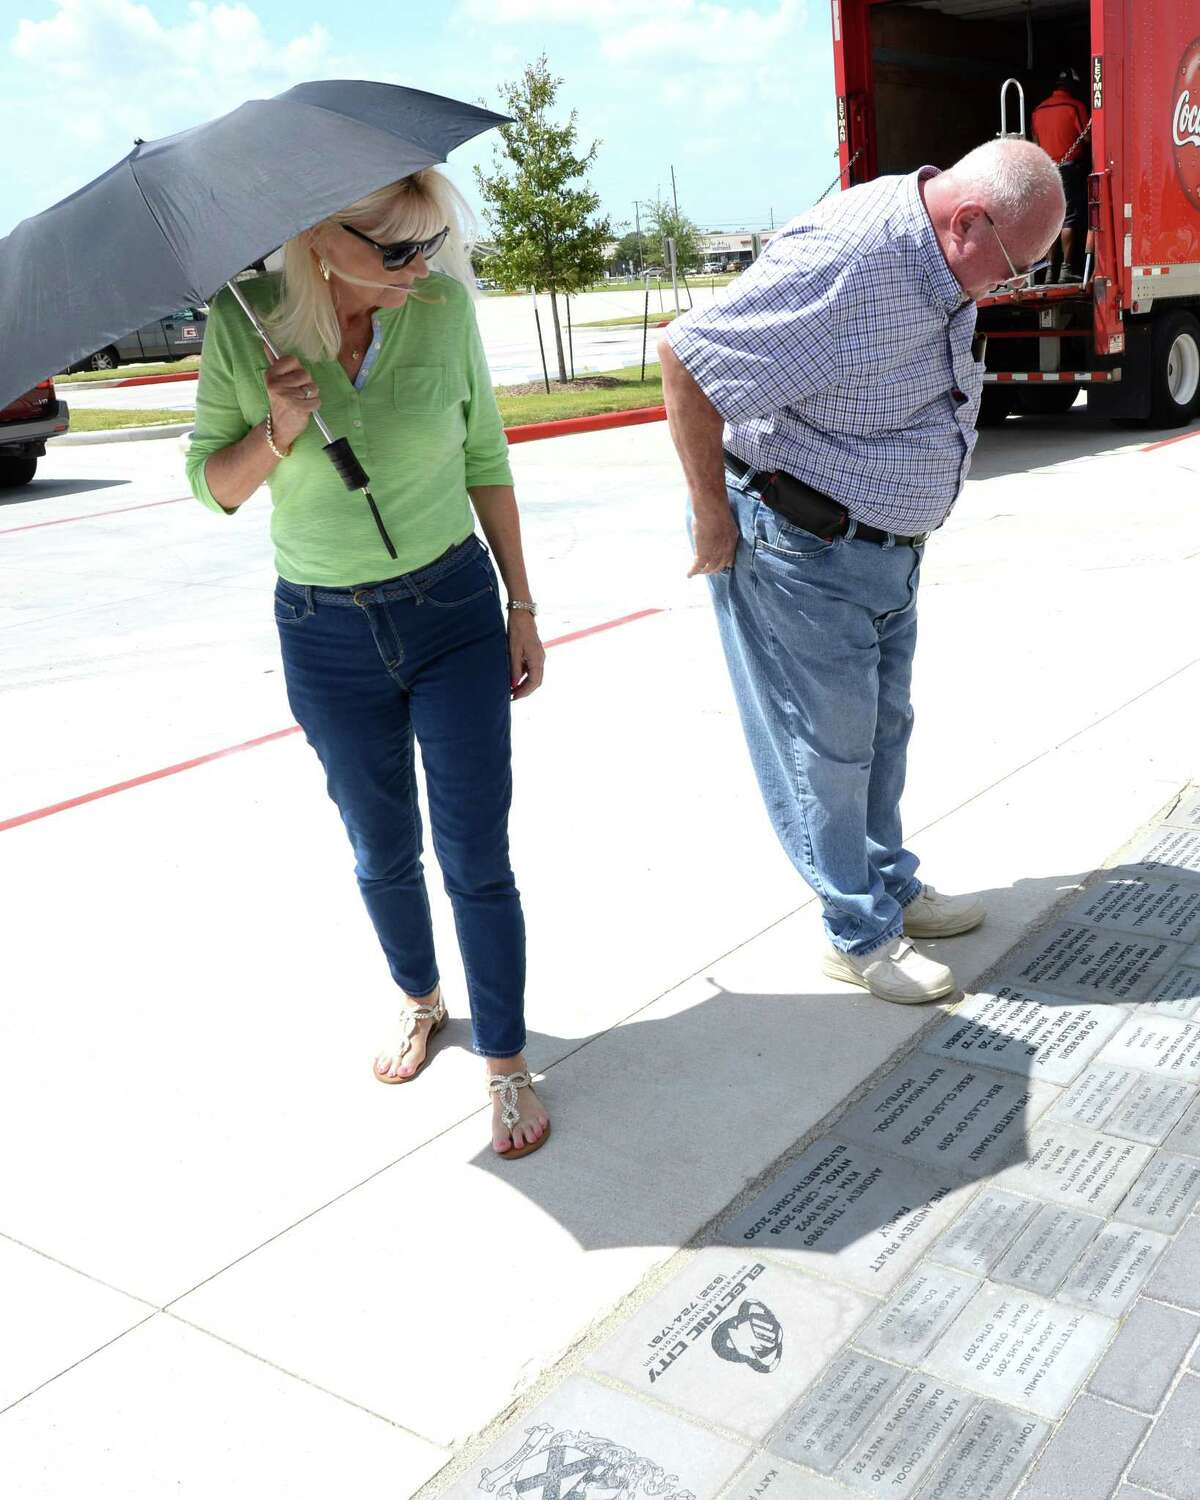 Visitors view brick pavers located on the home side of the Katy ISD Legacy Stadium in Katy, TX on August 17, 2017. Proceeds from the sale of the brick pavers will go toward the Katy ISD Athletic Hall of Honor.